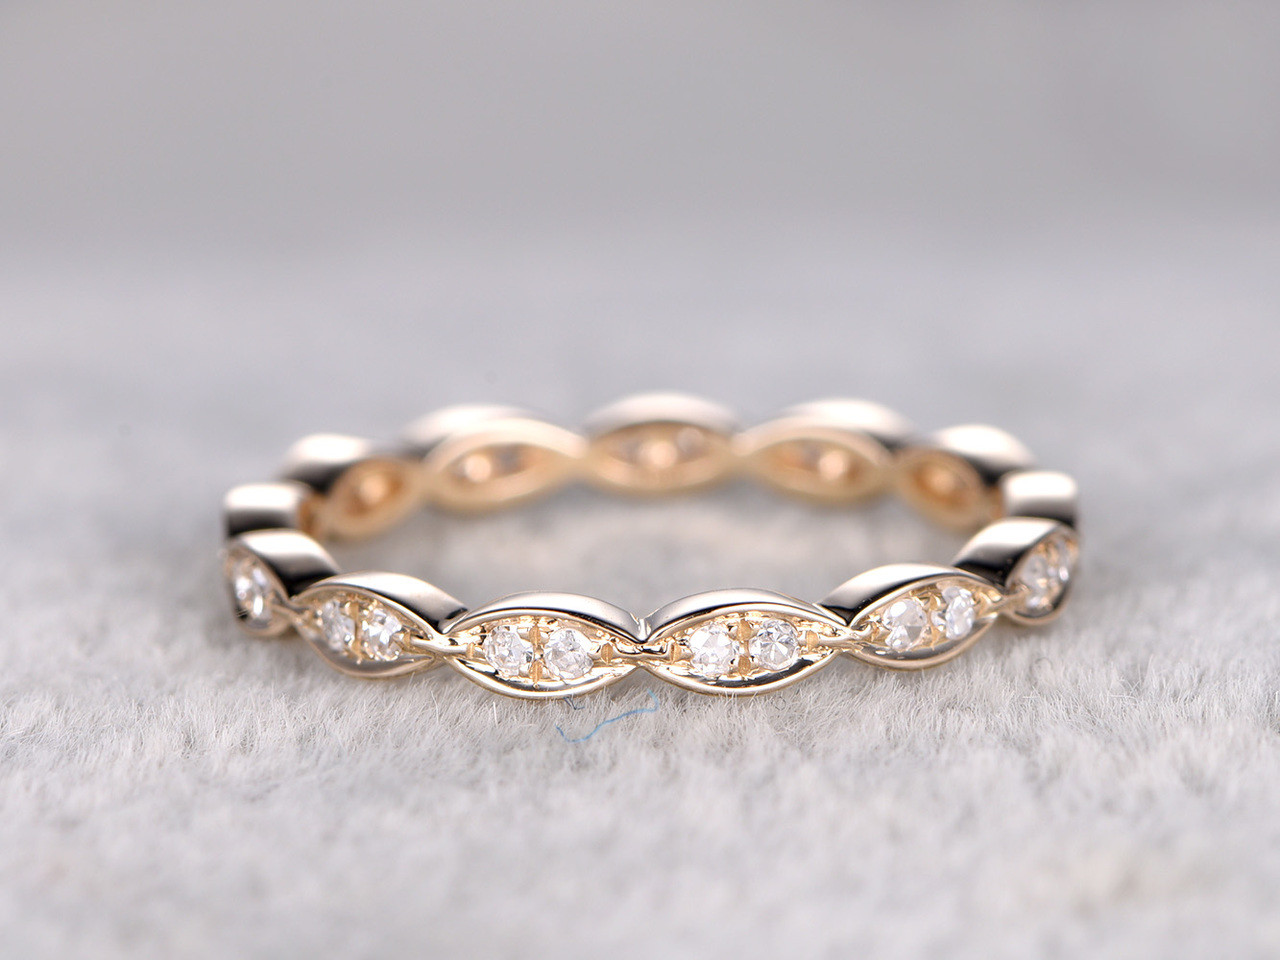 eternity alternating pave gold shaped wb pm bands diamond marquise band yellow rose in